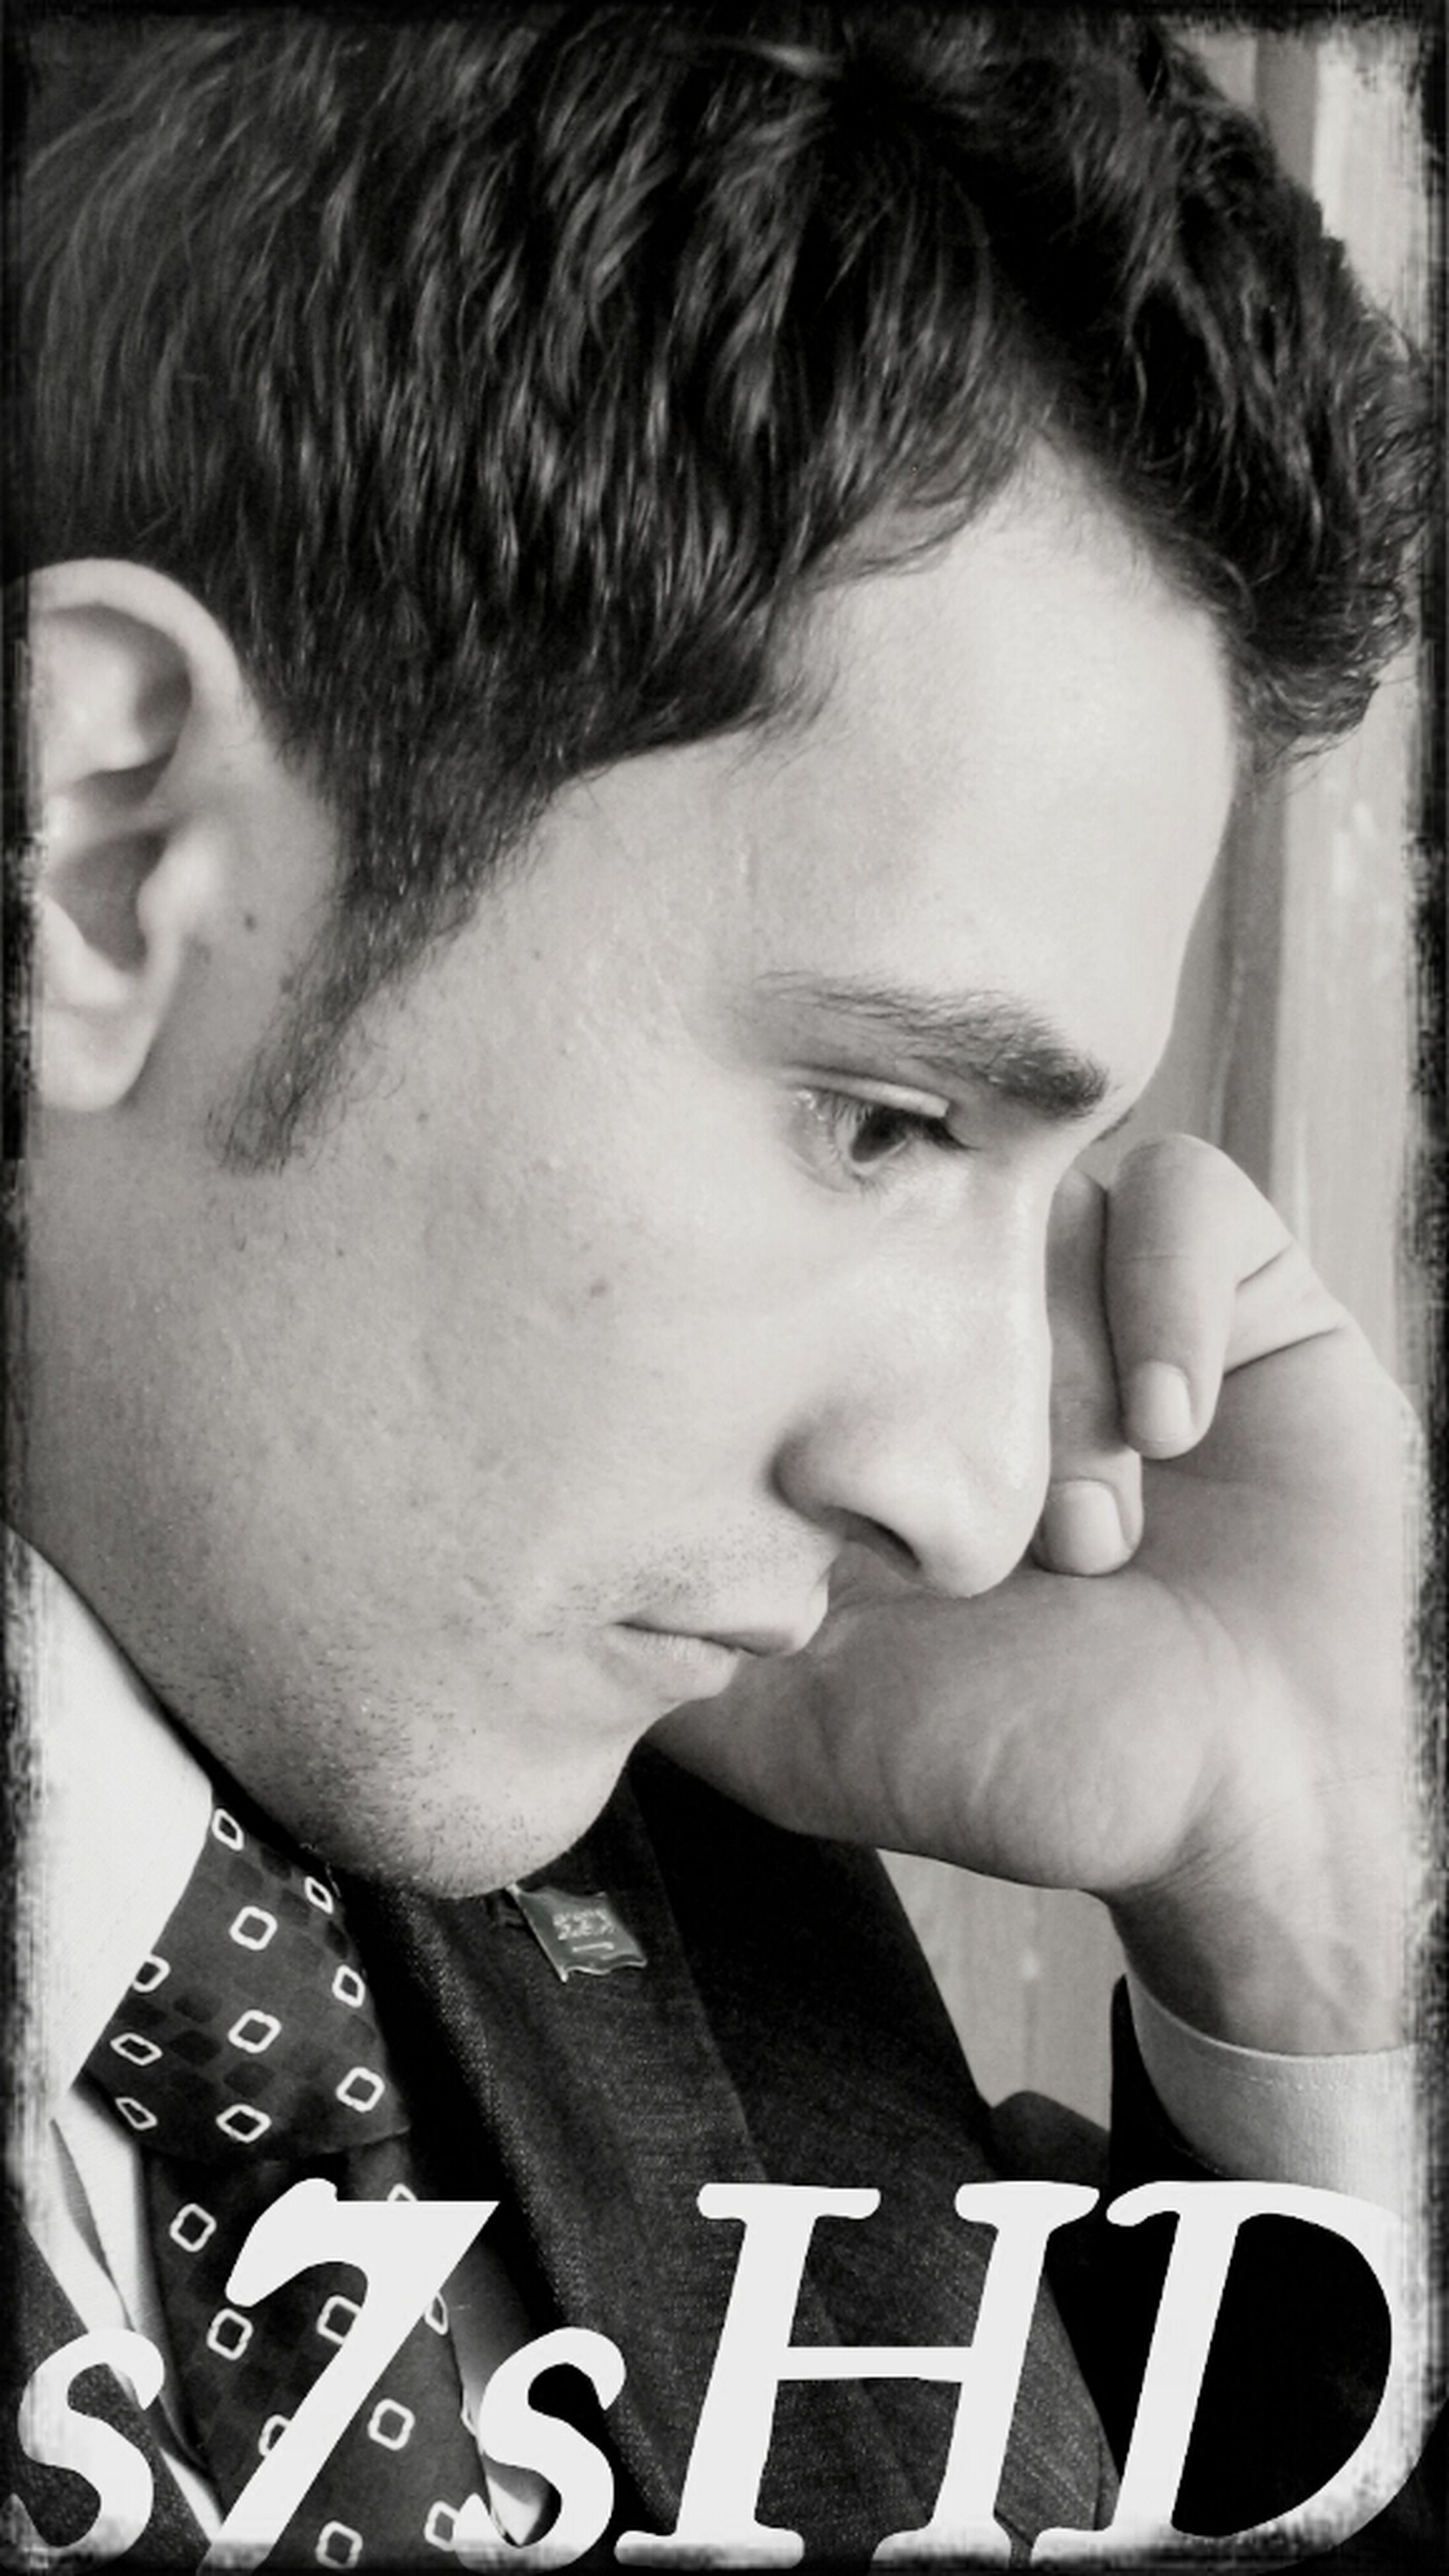 lifestyles, person, headshot, young adult, leisure activity, close-up, communication, front view, text, indoors, portrait, human face, looking at camera, young men, western script, focus on foreground